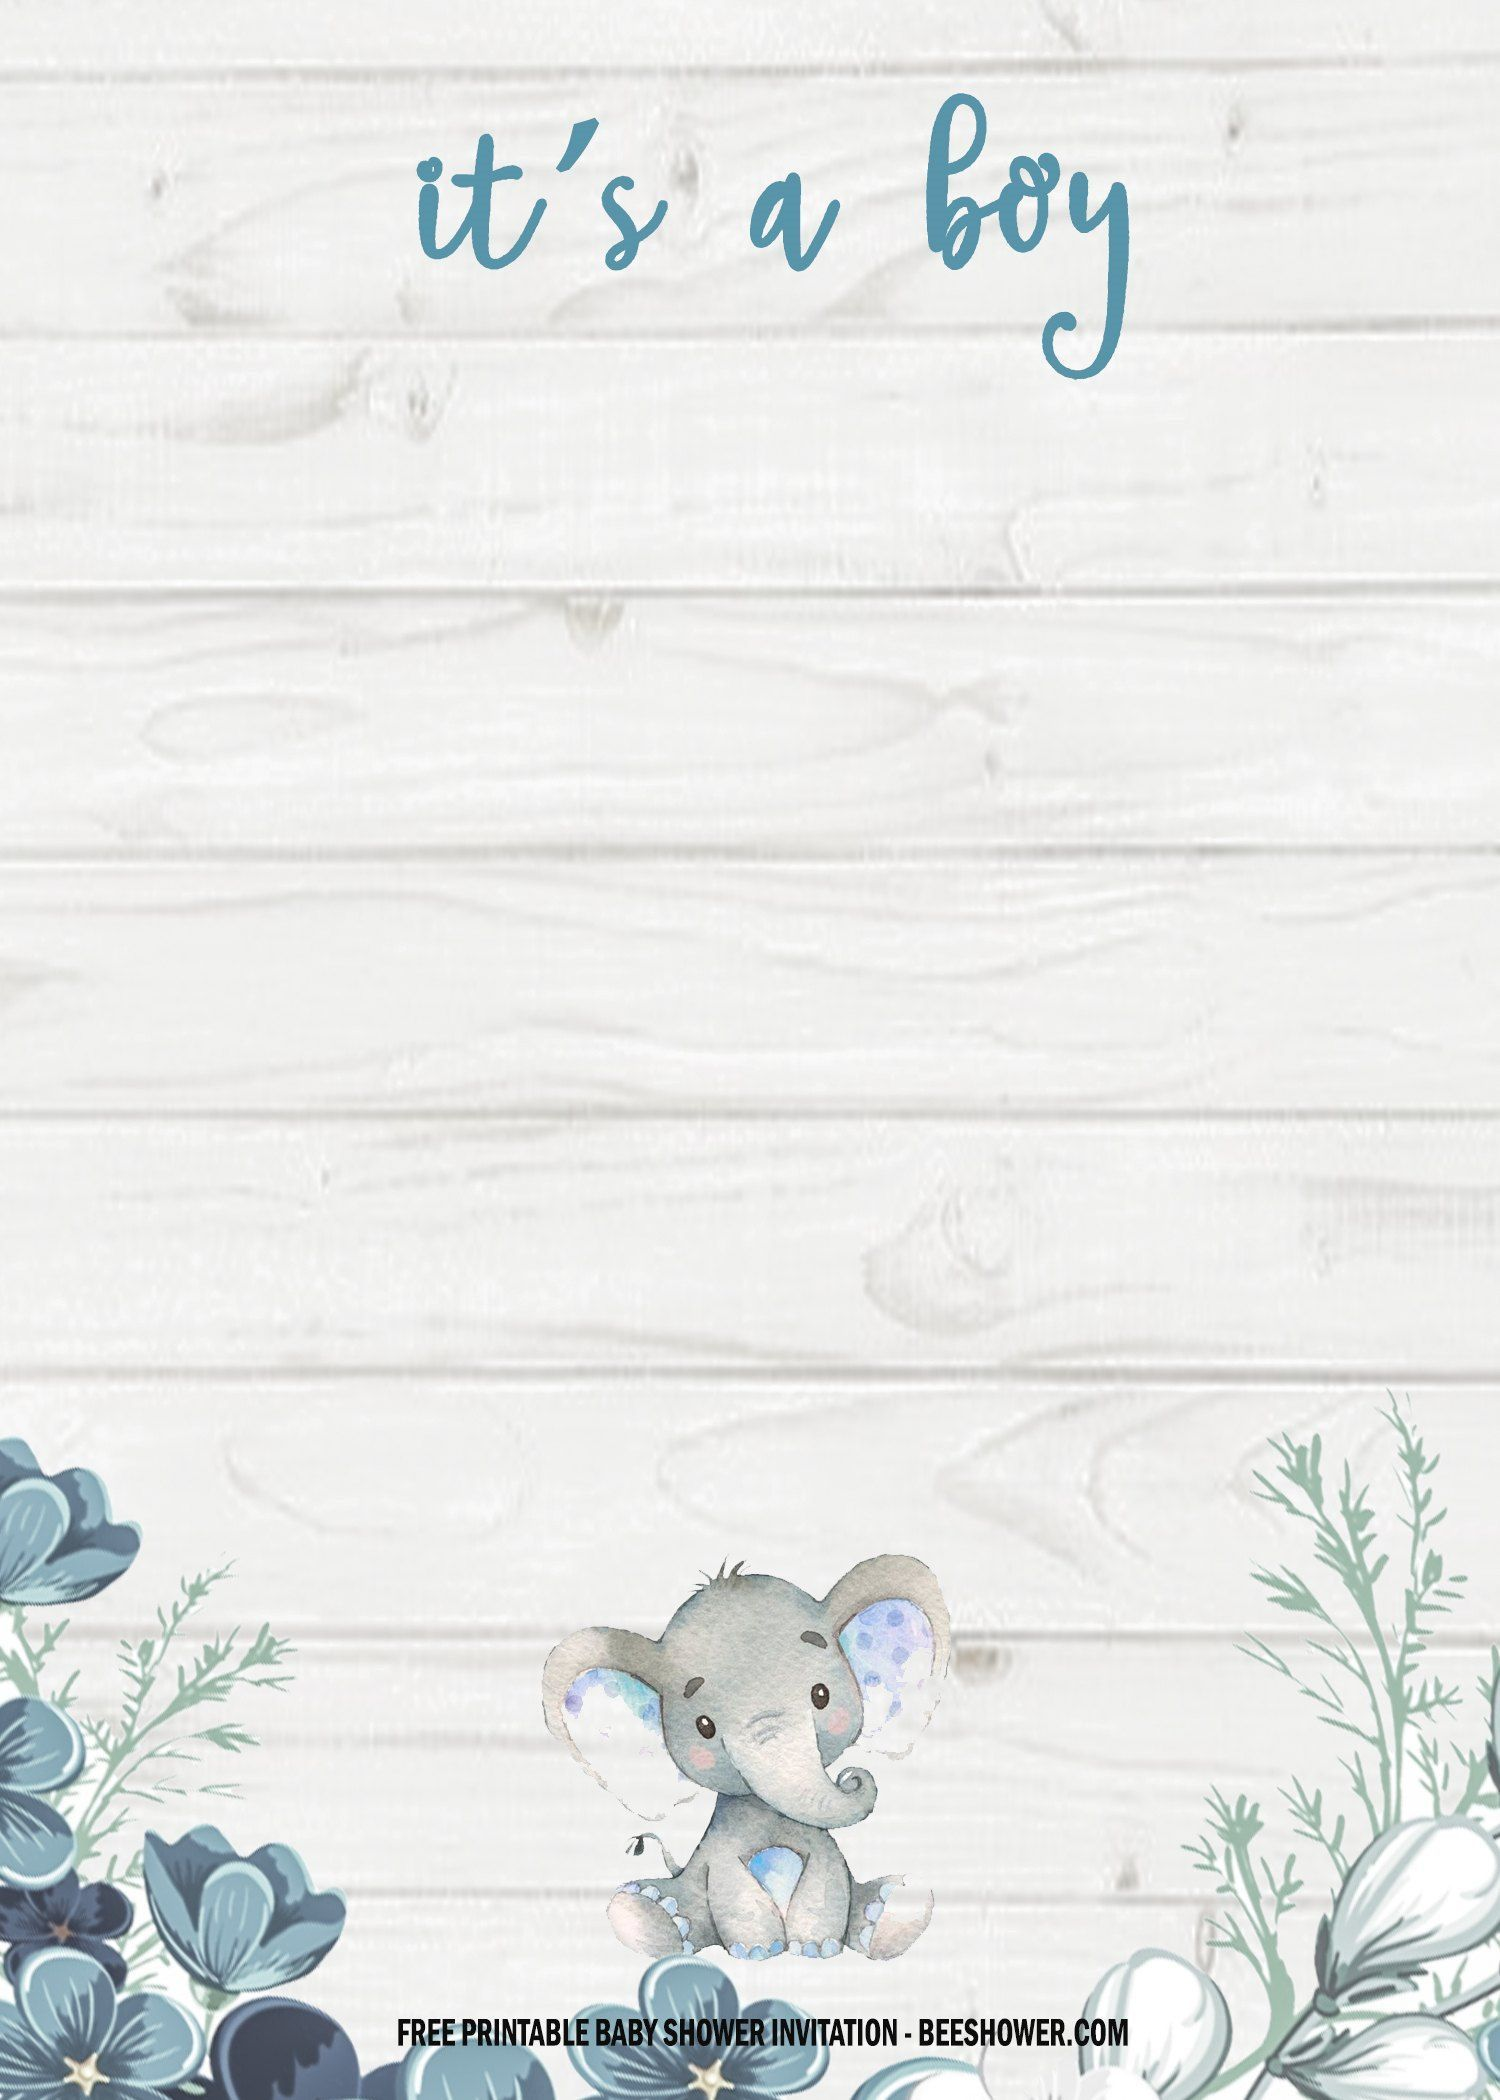 002 Stupendou Free Baby Shower Invitation Printable Boy Image  For Twin And GirlFull